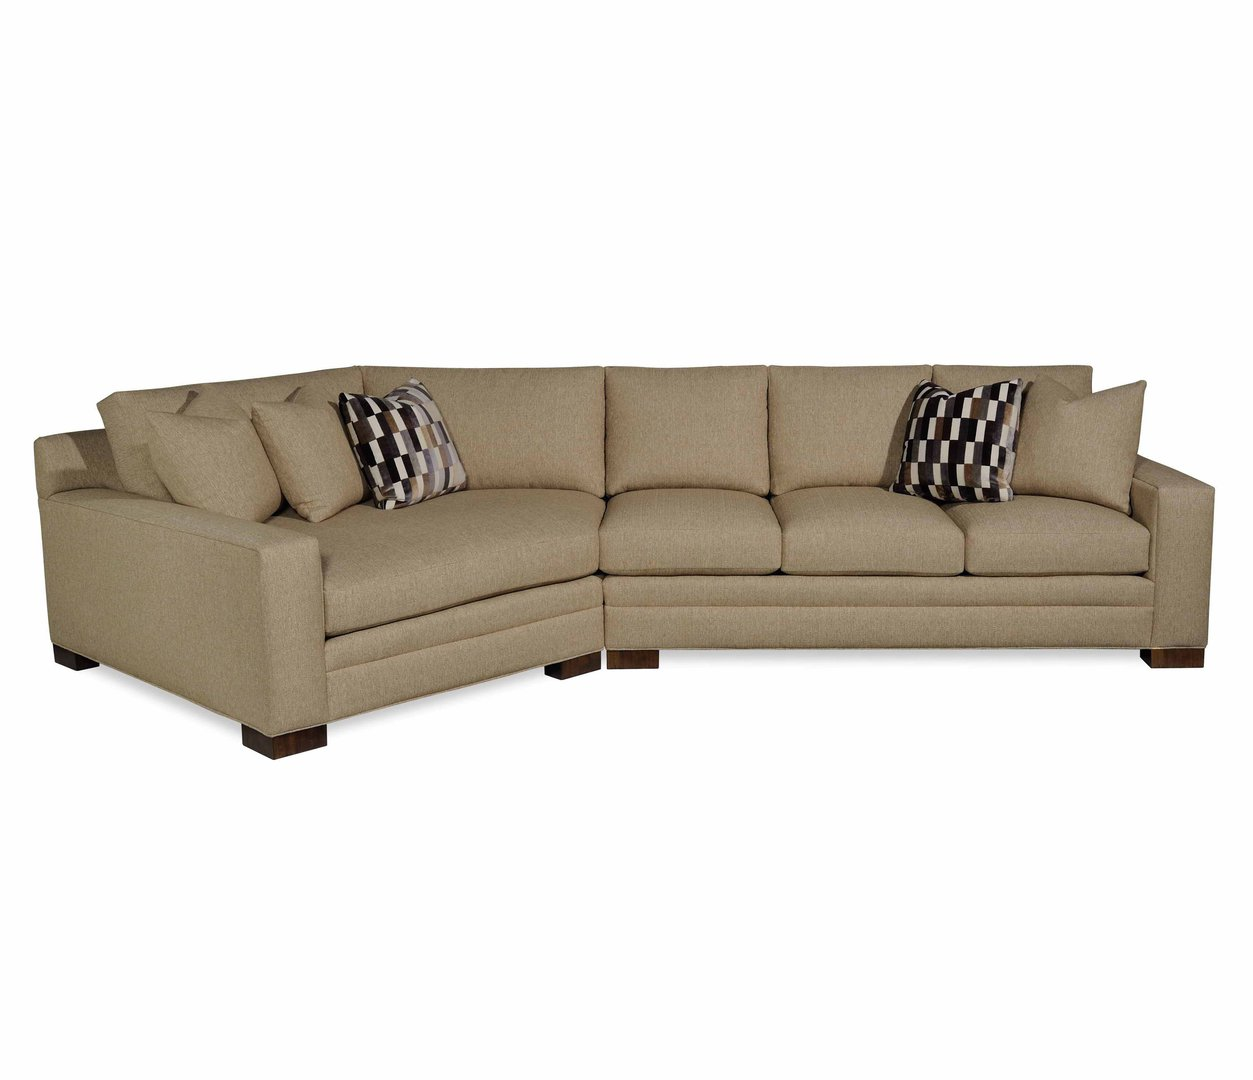 Taylor Made Plush Sectional Image